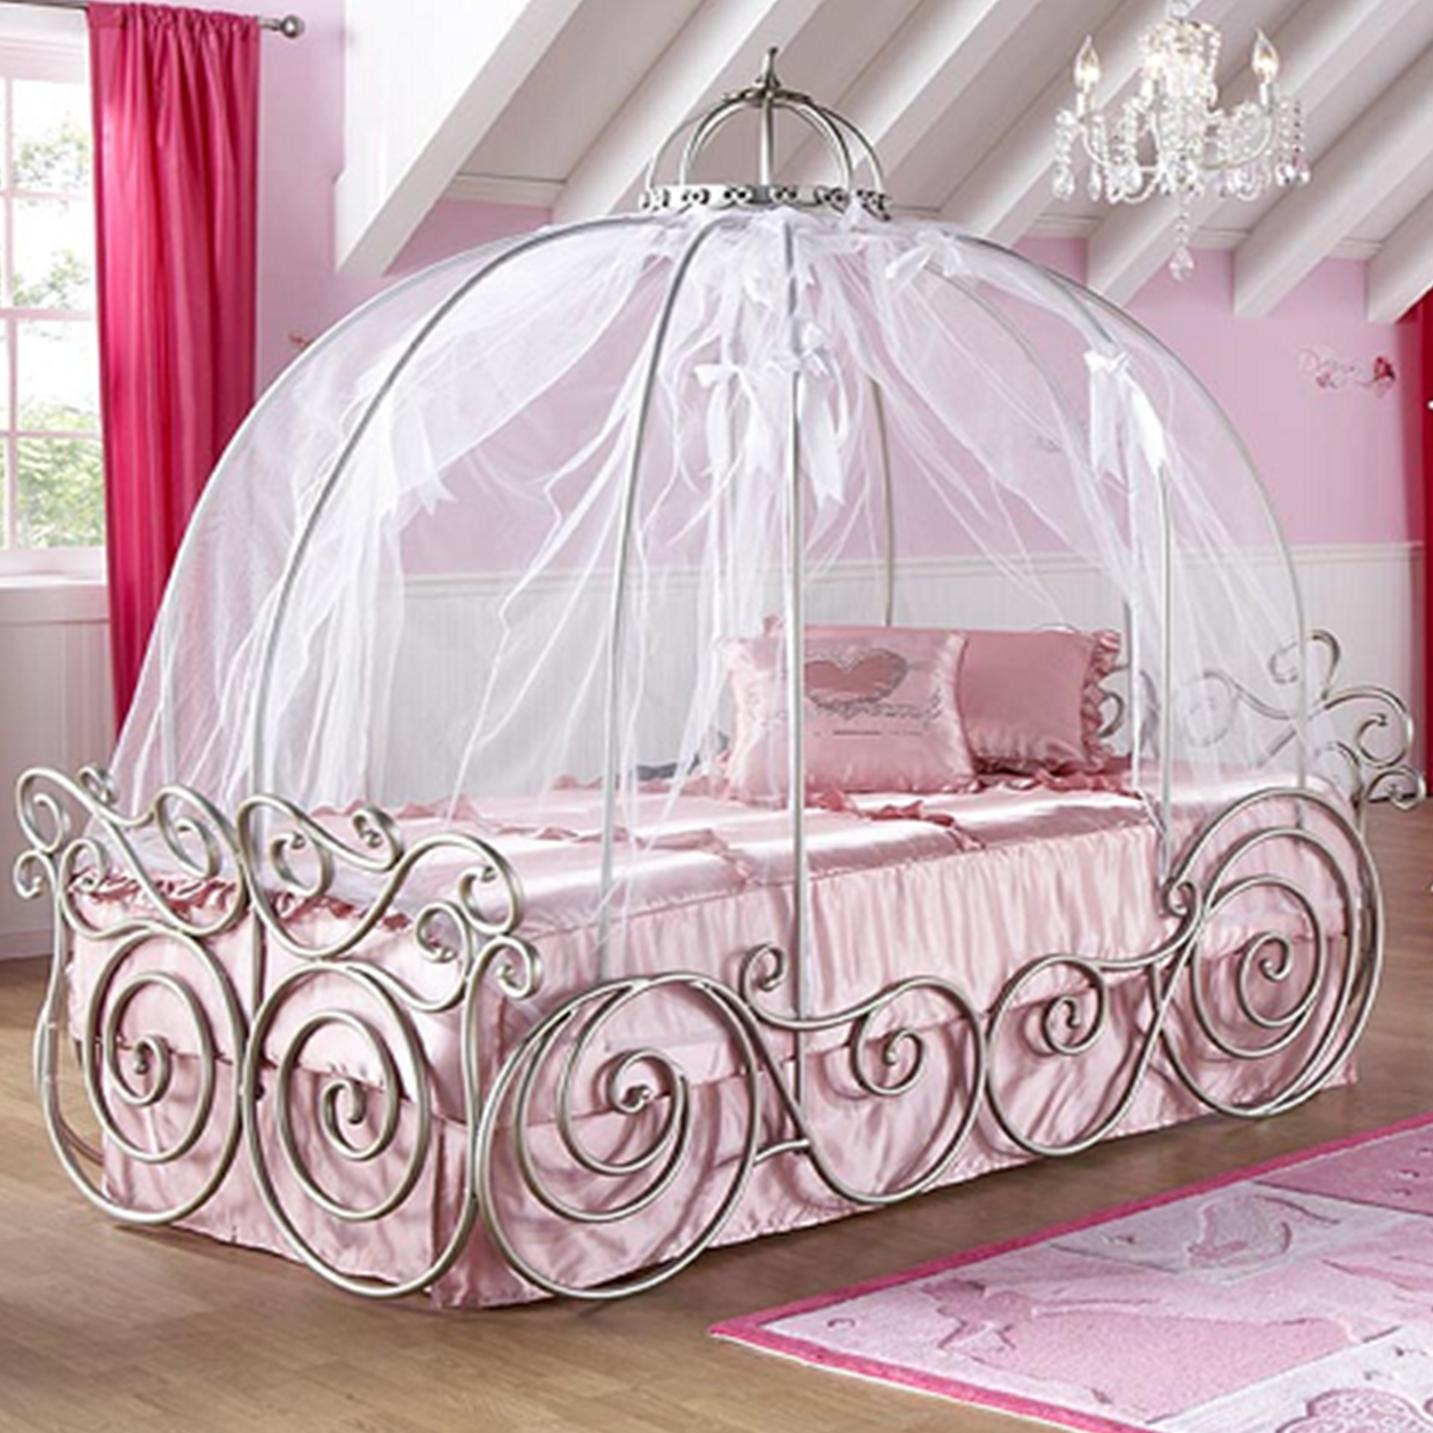 Girls bed canopy ideas - Amazing Design Of The Princess Canopy Bed With White Silk Curtain Added With Iron Framework Of